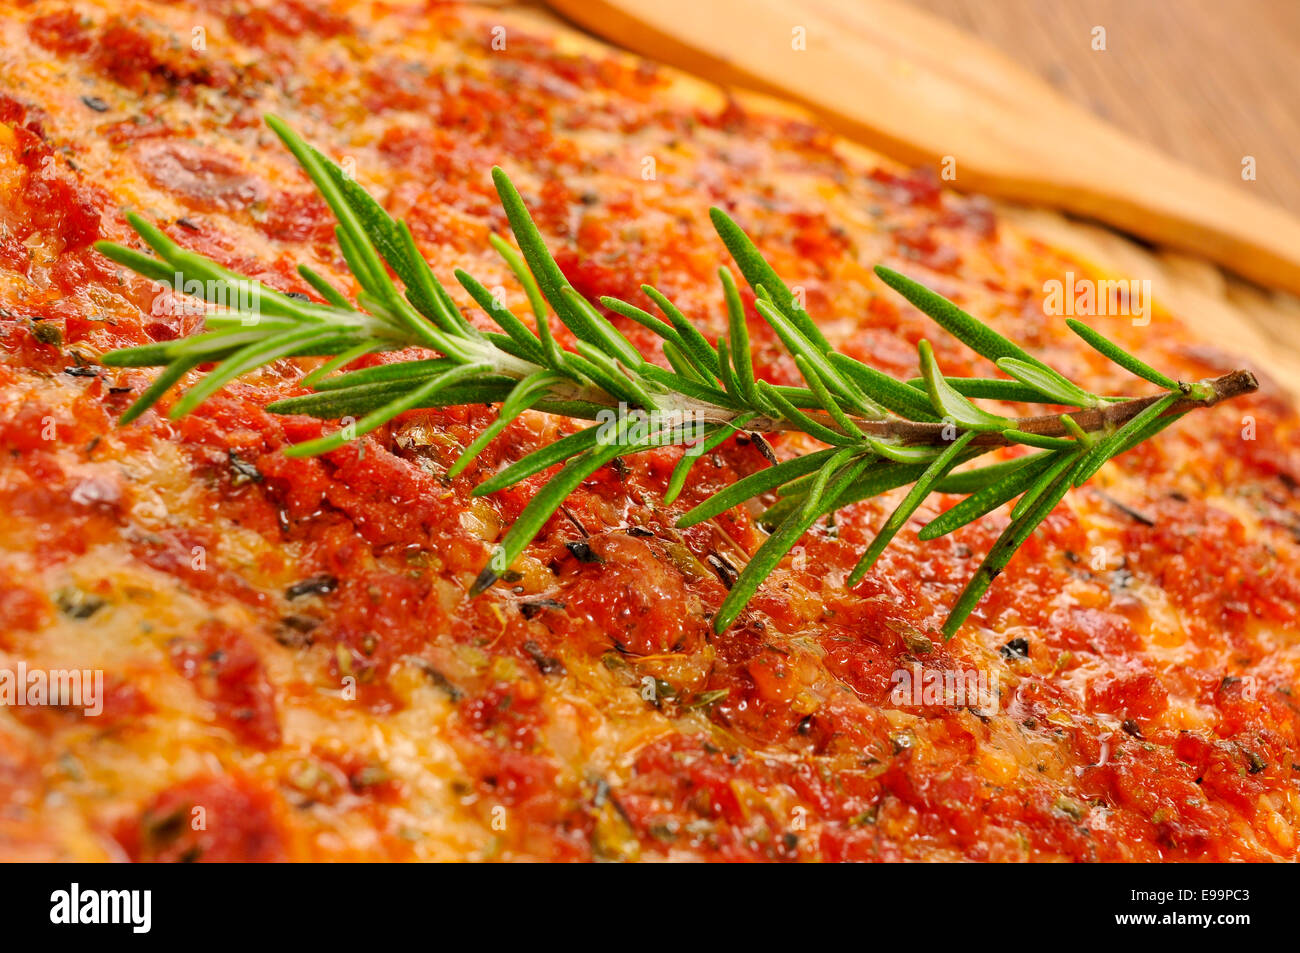 closeup of a barbecue pizza, with mozzarella, ground beef and barbecue sauce - Stock Image